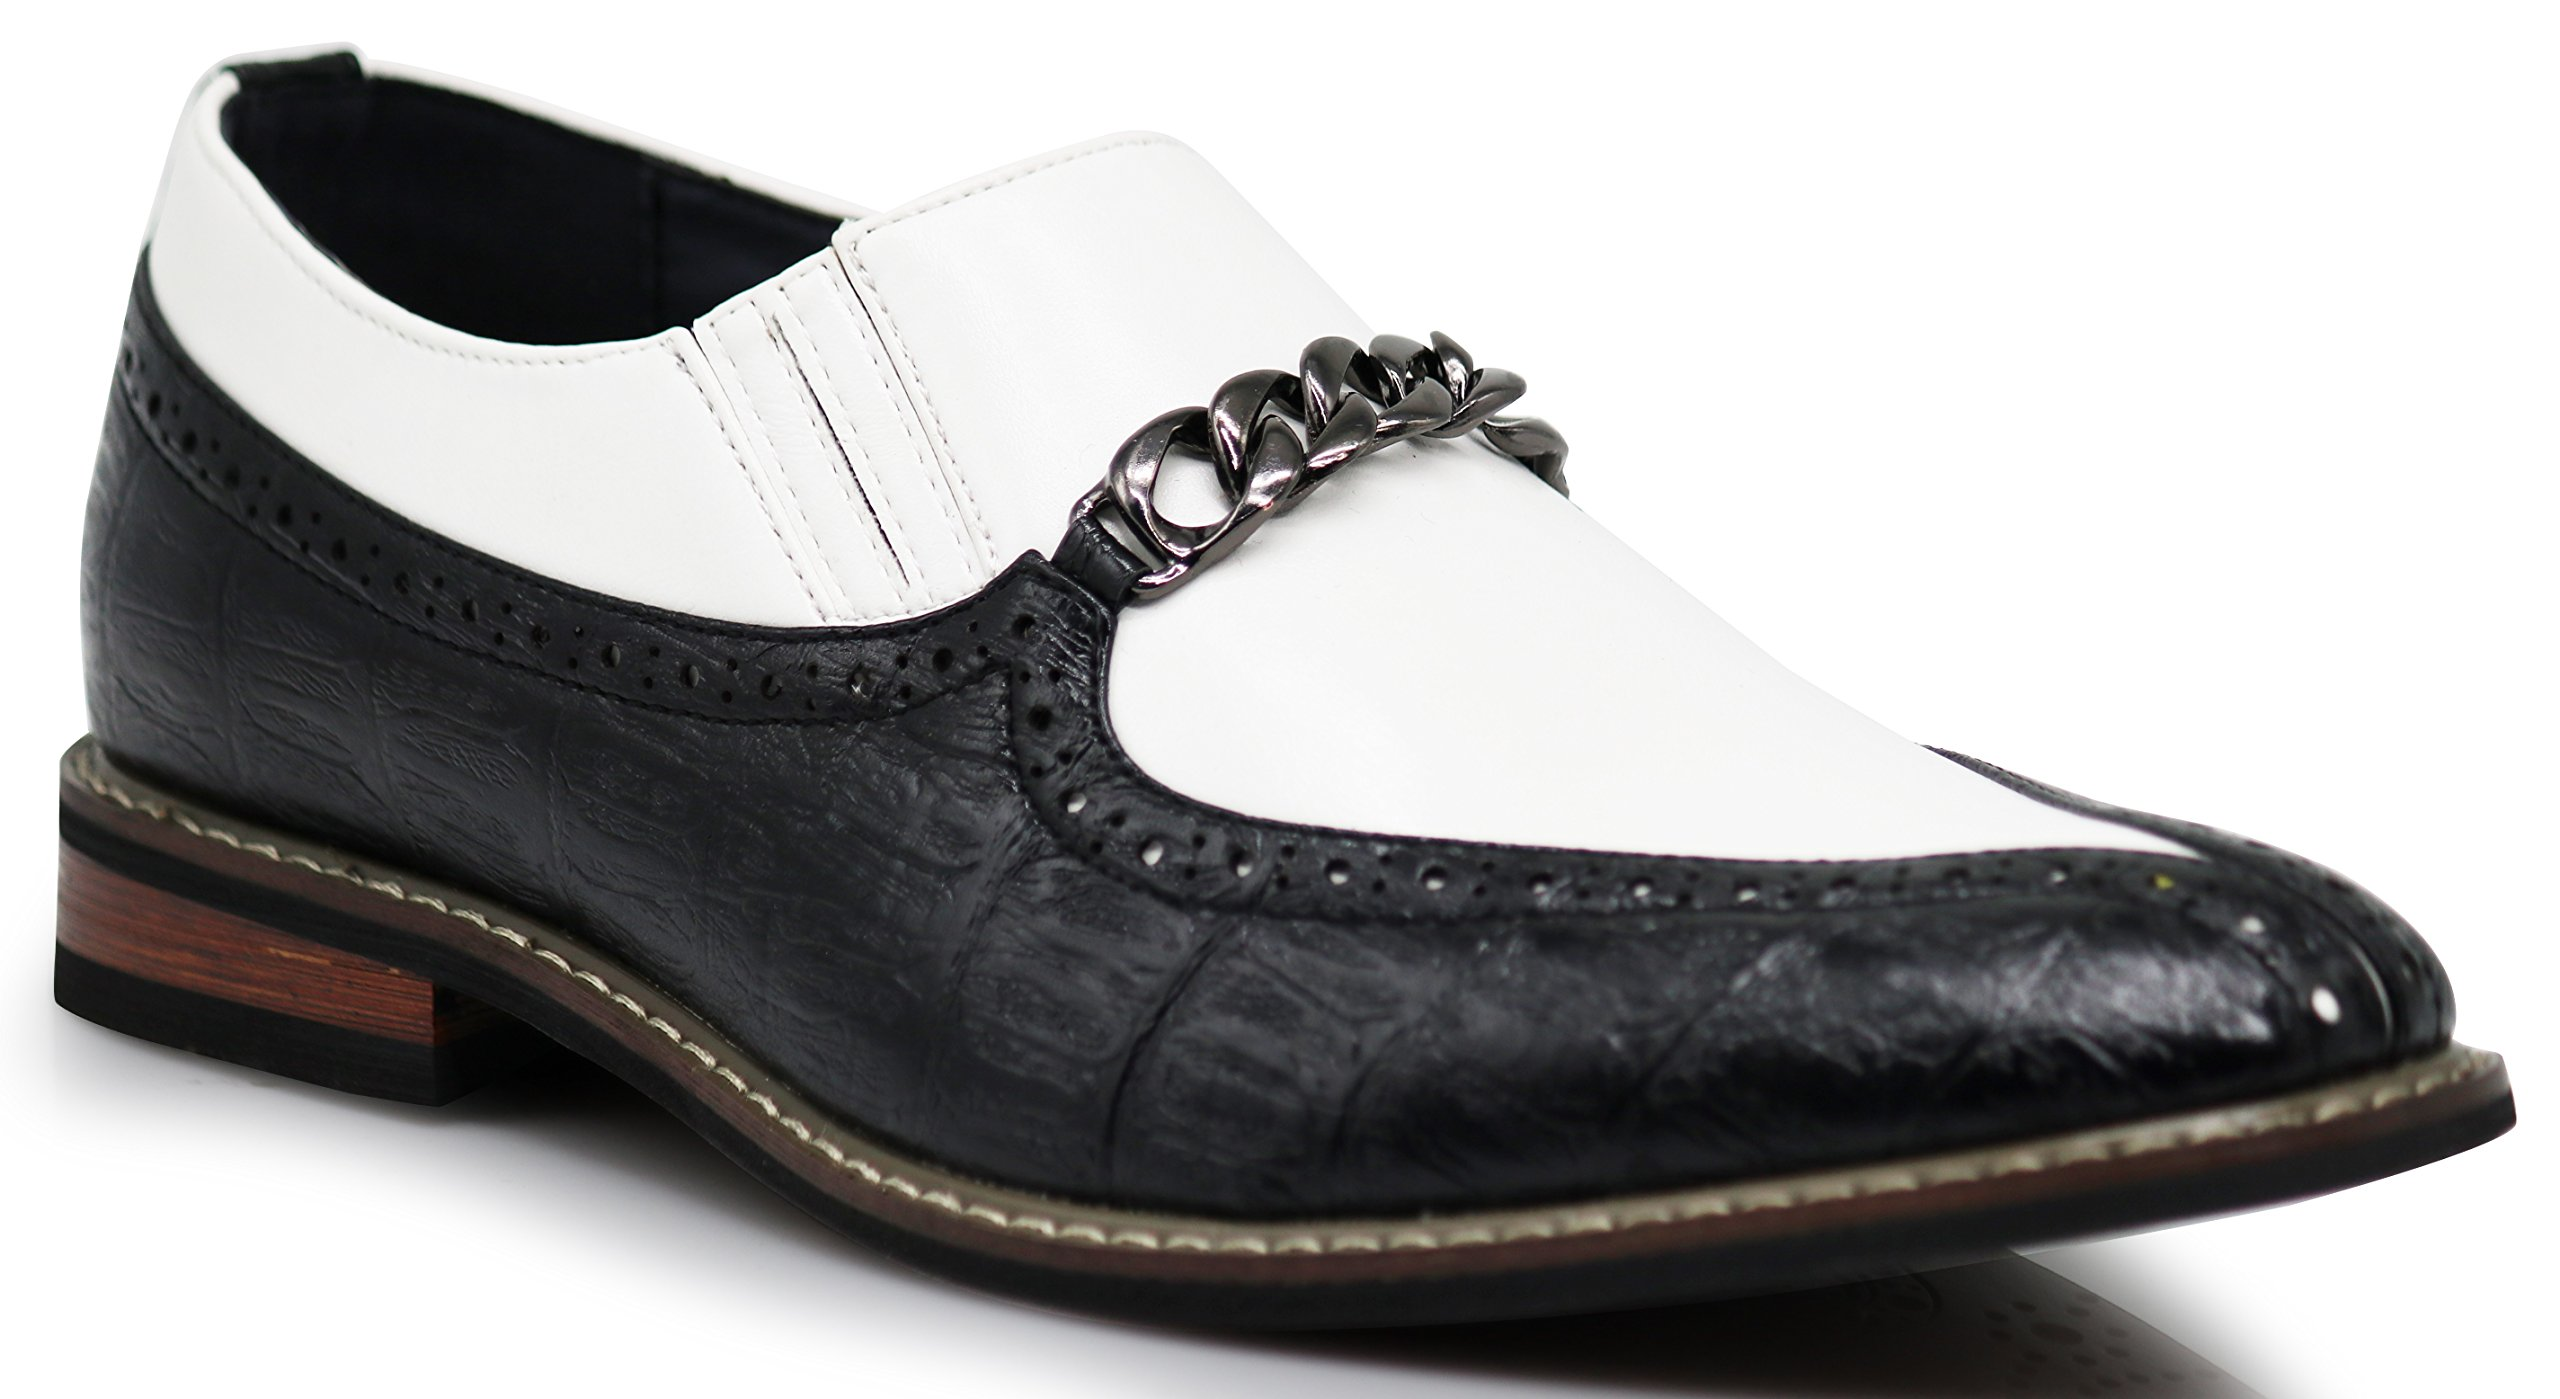 CRD3 Men's Two Tone Spade Heart Toe Chain Buckle Slip On Loafers Oxfords Perforated Dress Shoes (11 D(M) US, Black/White)